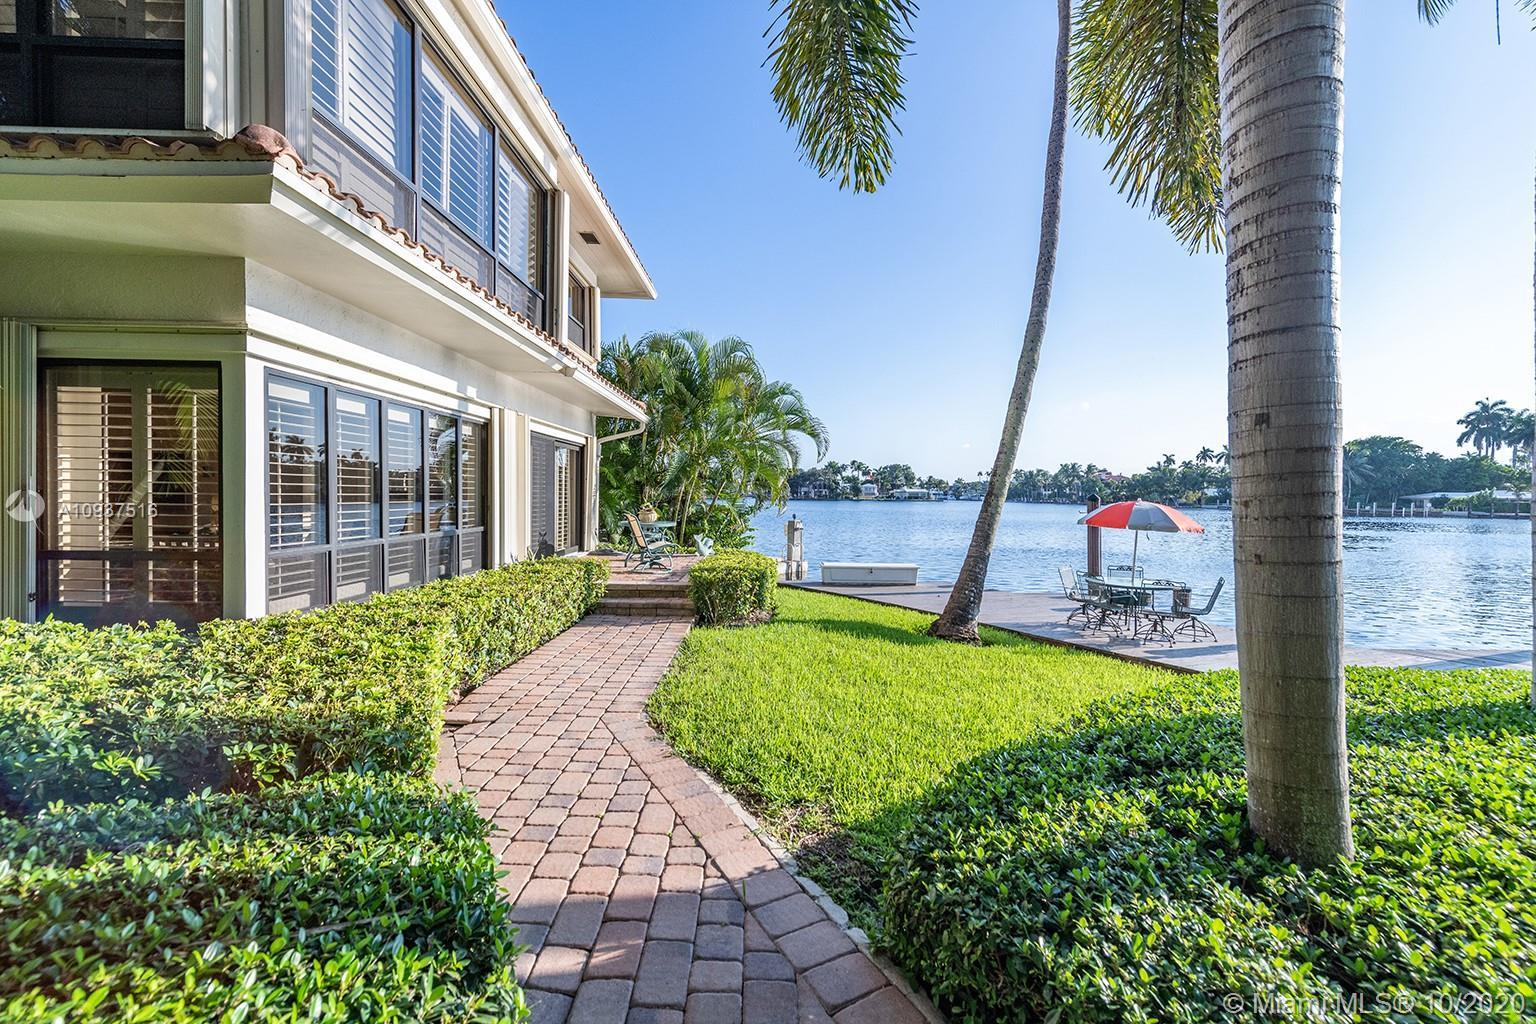 Enjoy the benefits of a private waterfront home with boat dockage but with the maintenance free ease